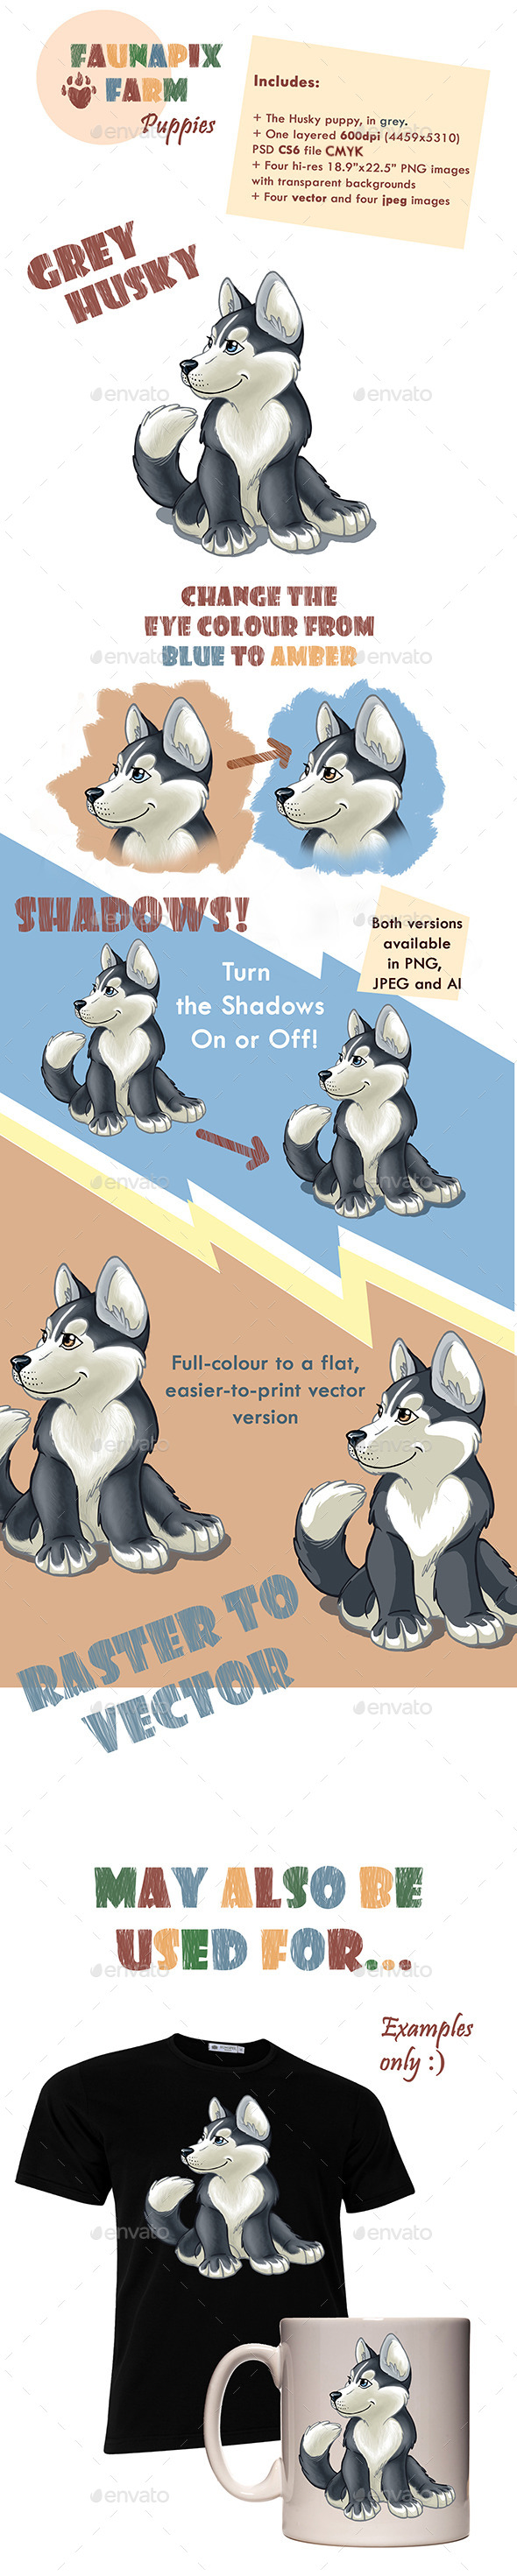 GraphicRiver Grey Husky Pup Illustration 8954615